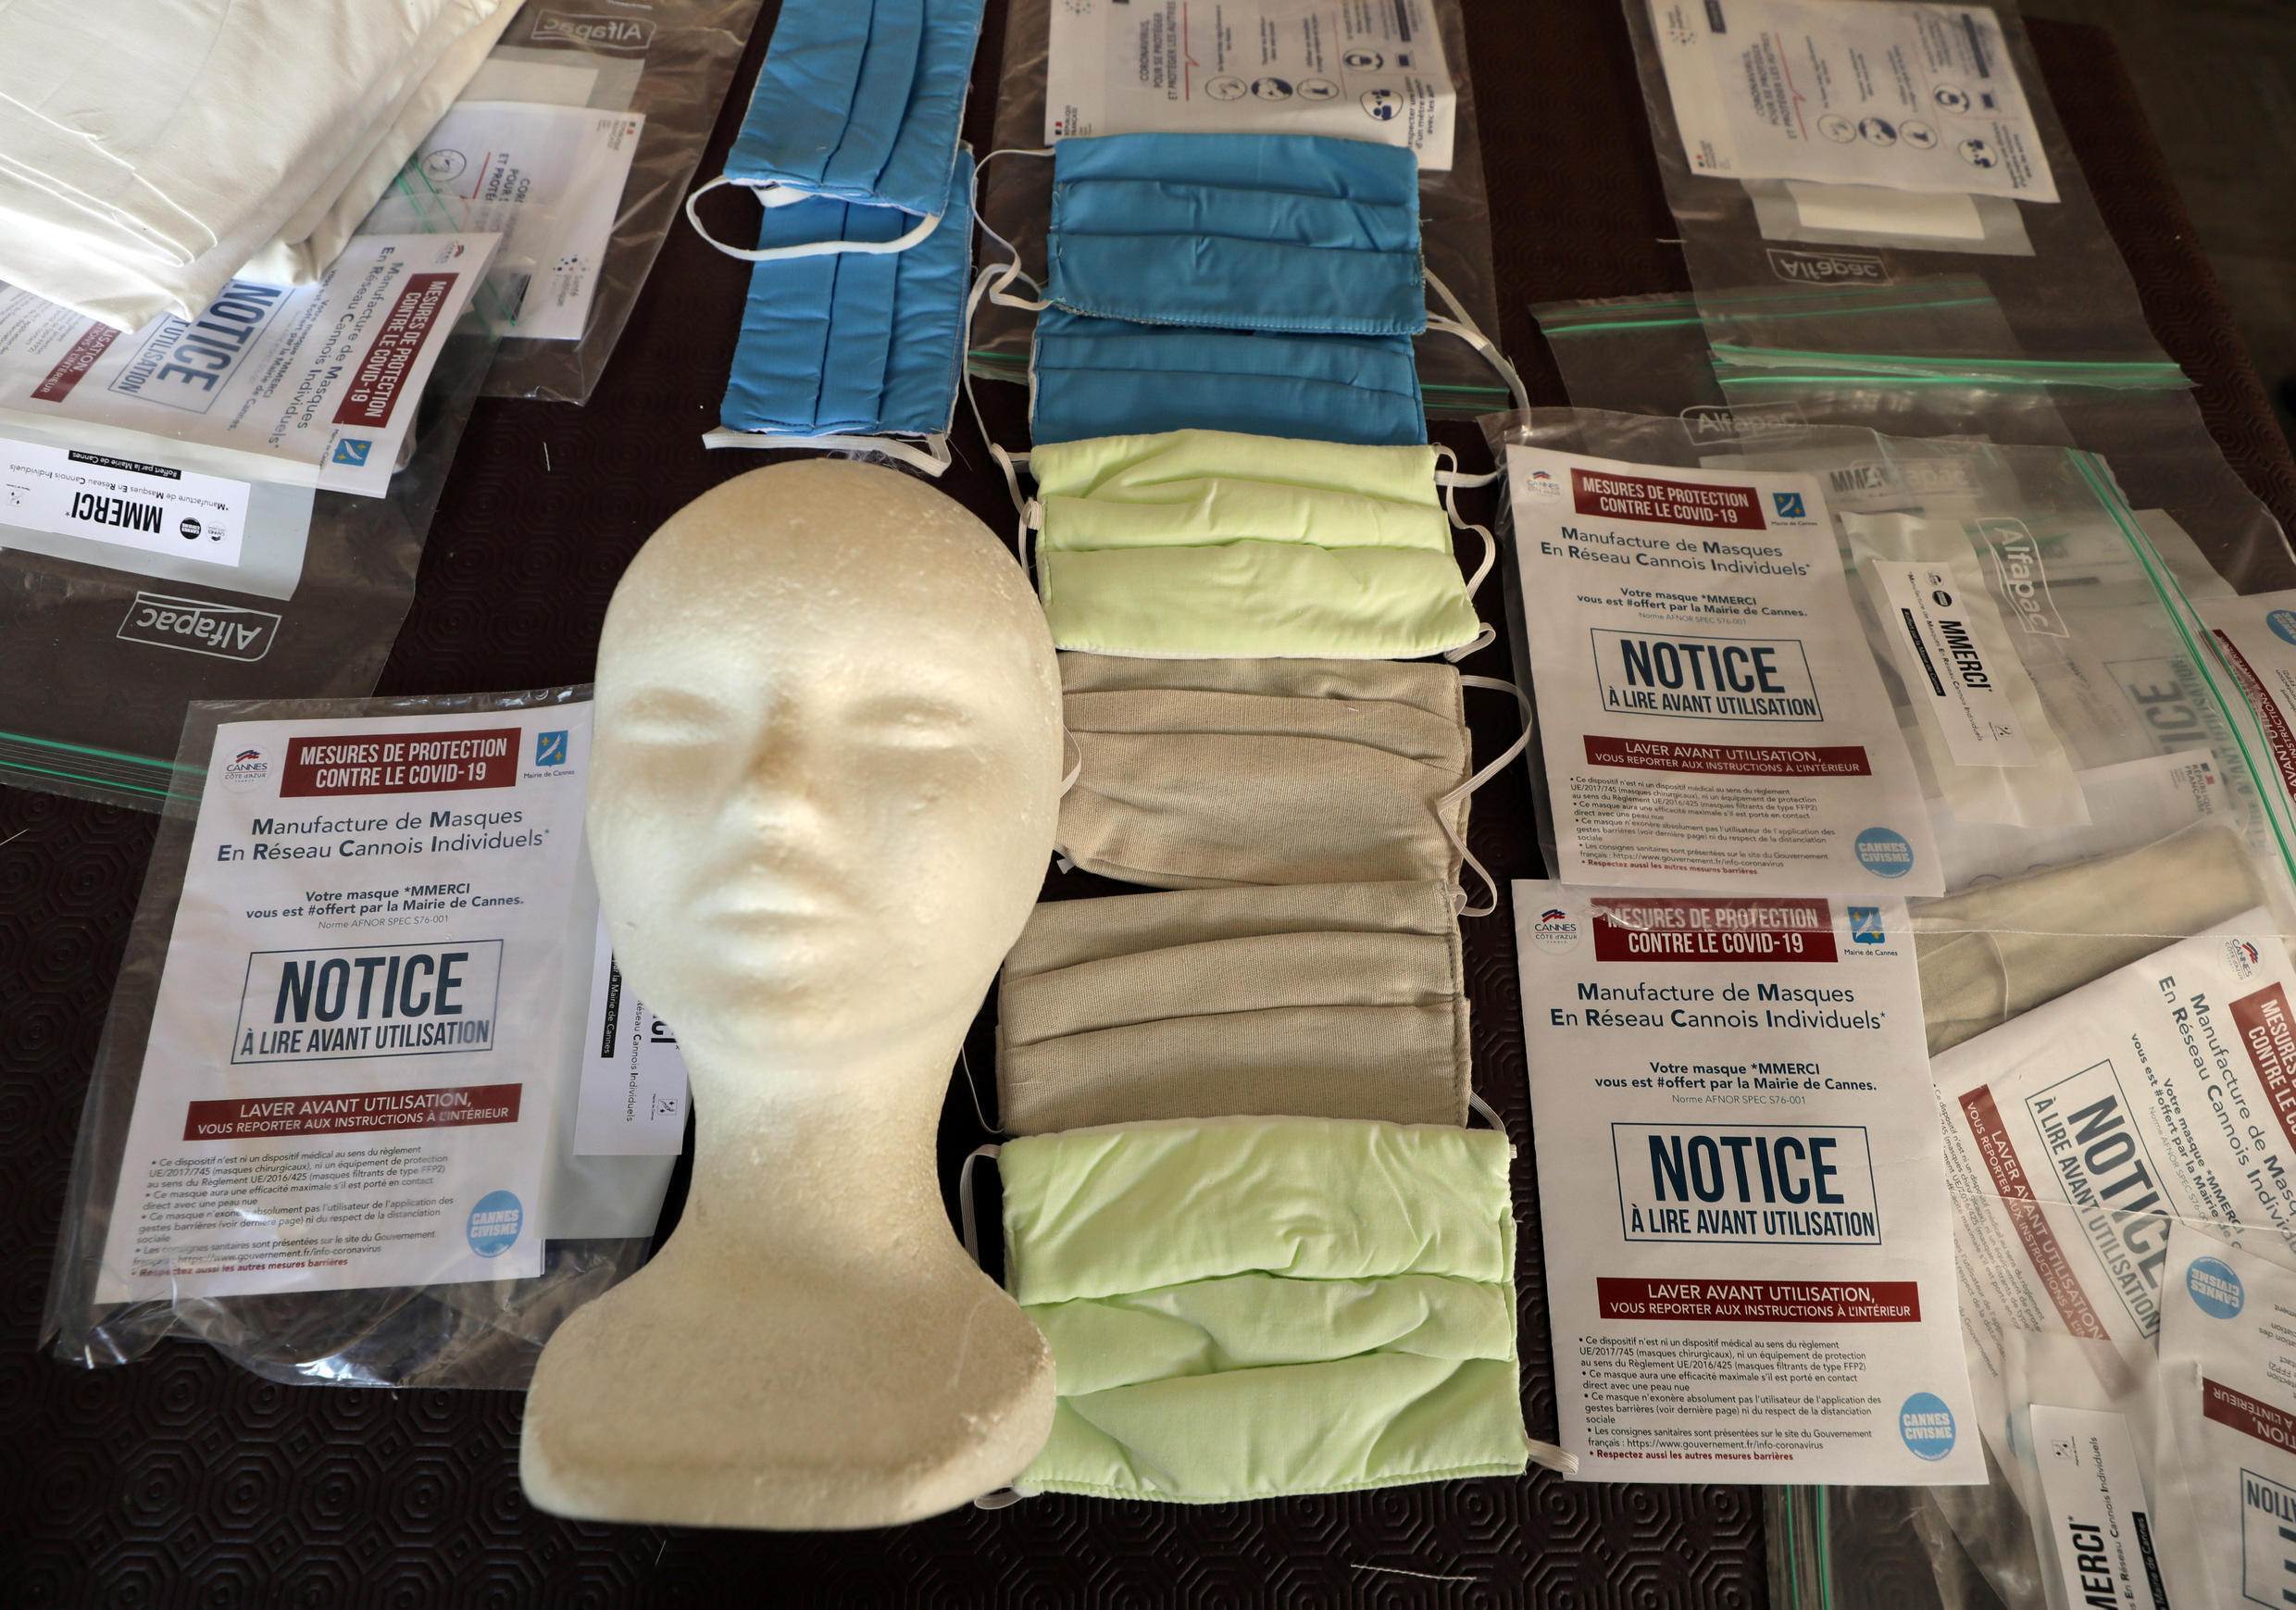 Protective face masks are seen at Aline Buffet's sewing workshop in Cannes, as the spread of the coronavirus disease continues in France, April 8, 2020.